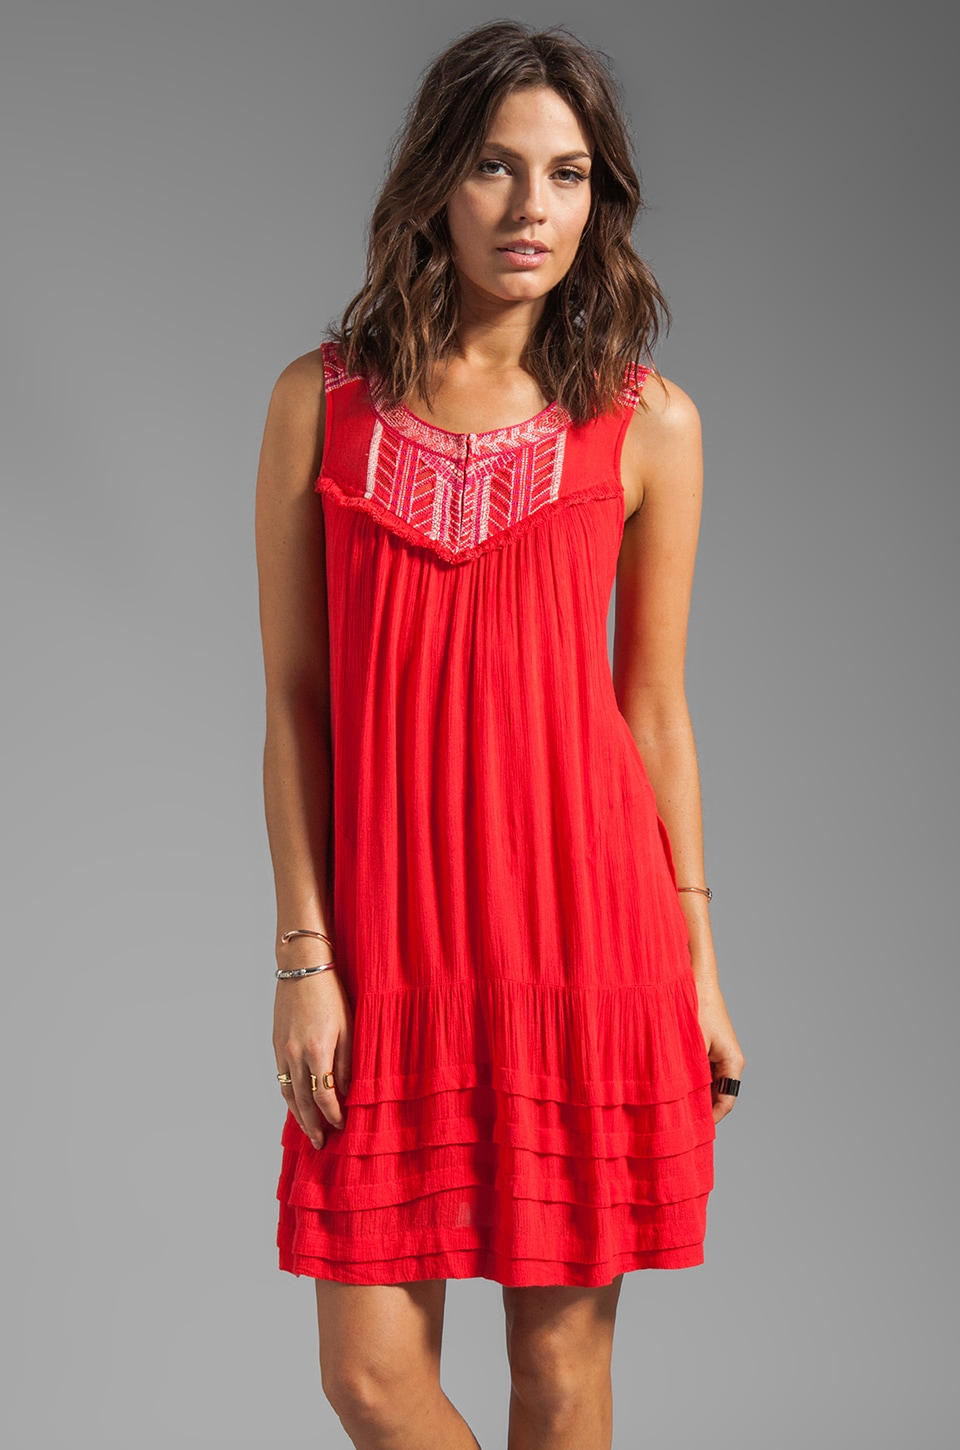 Free People City Limits Dress in Poppy